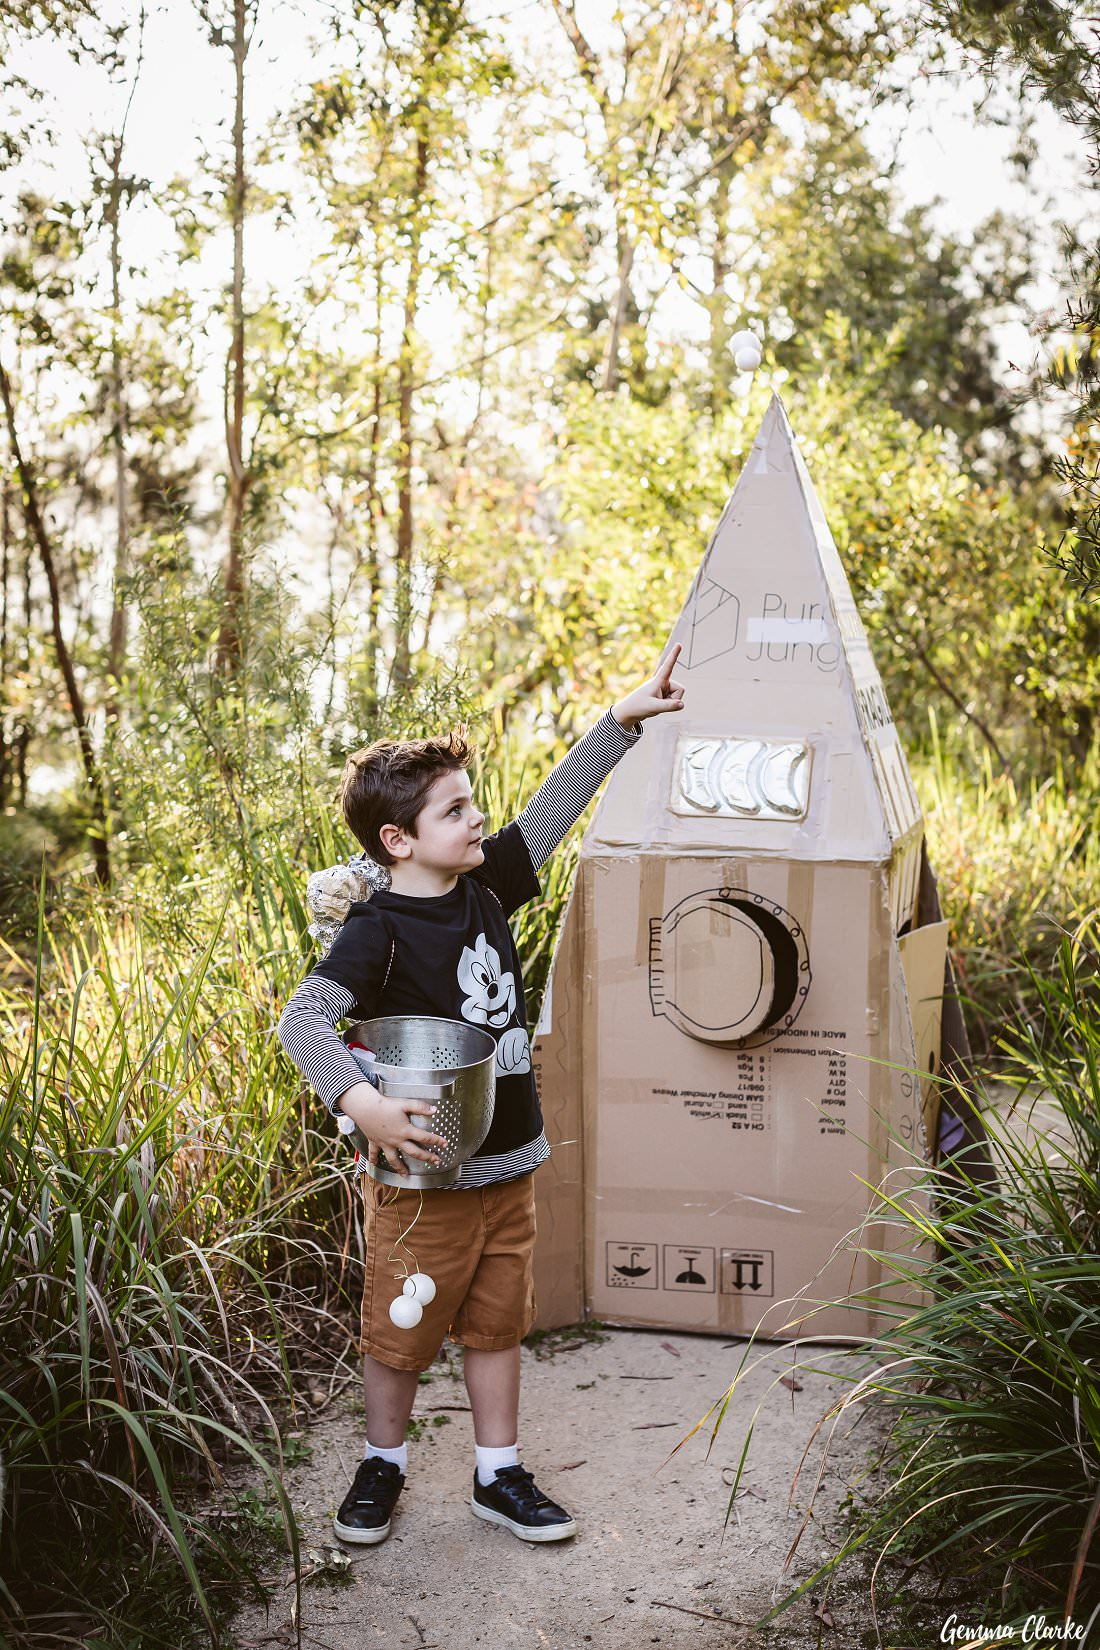 Henry holding his space helmet and in front of his amazing cardboard rocket at his space themed photo shoot